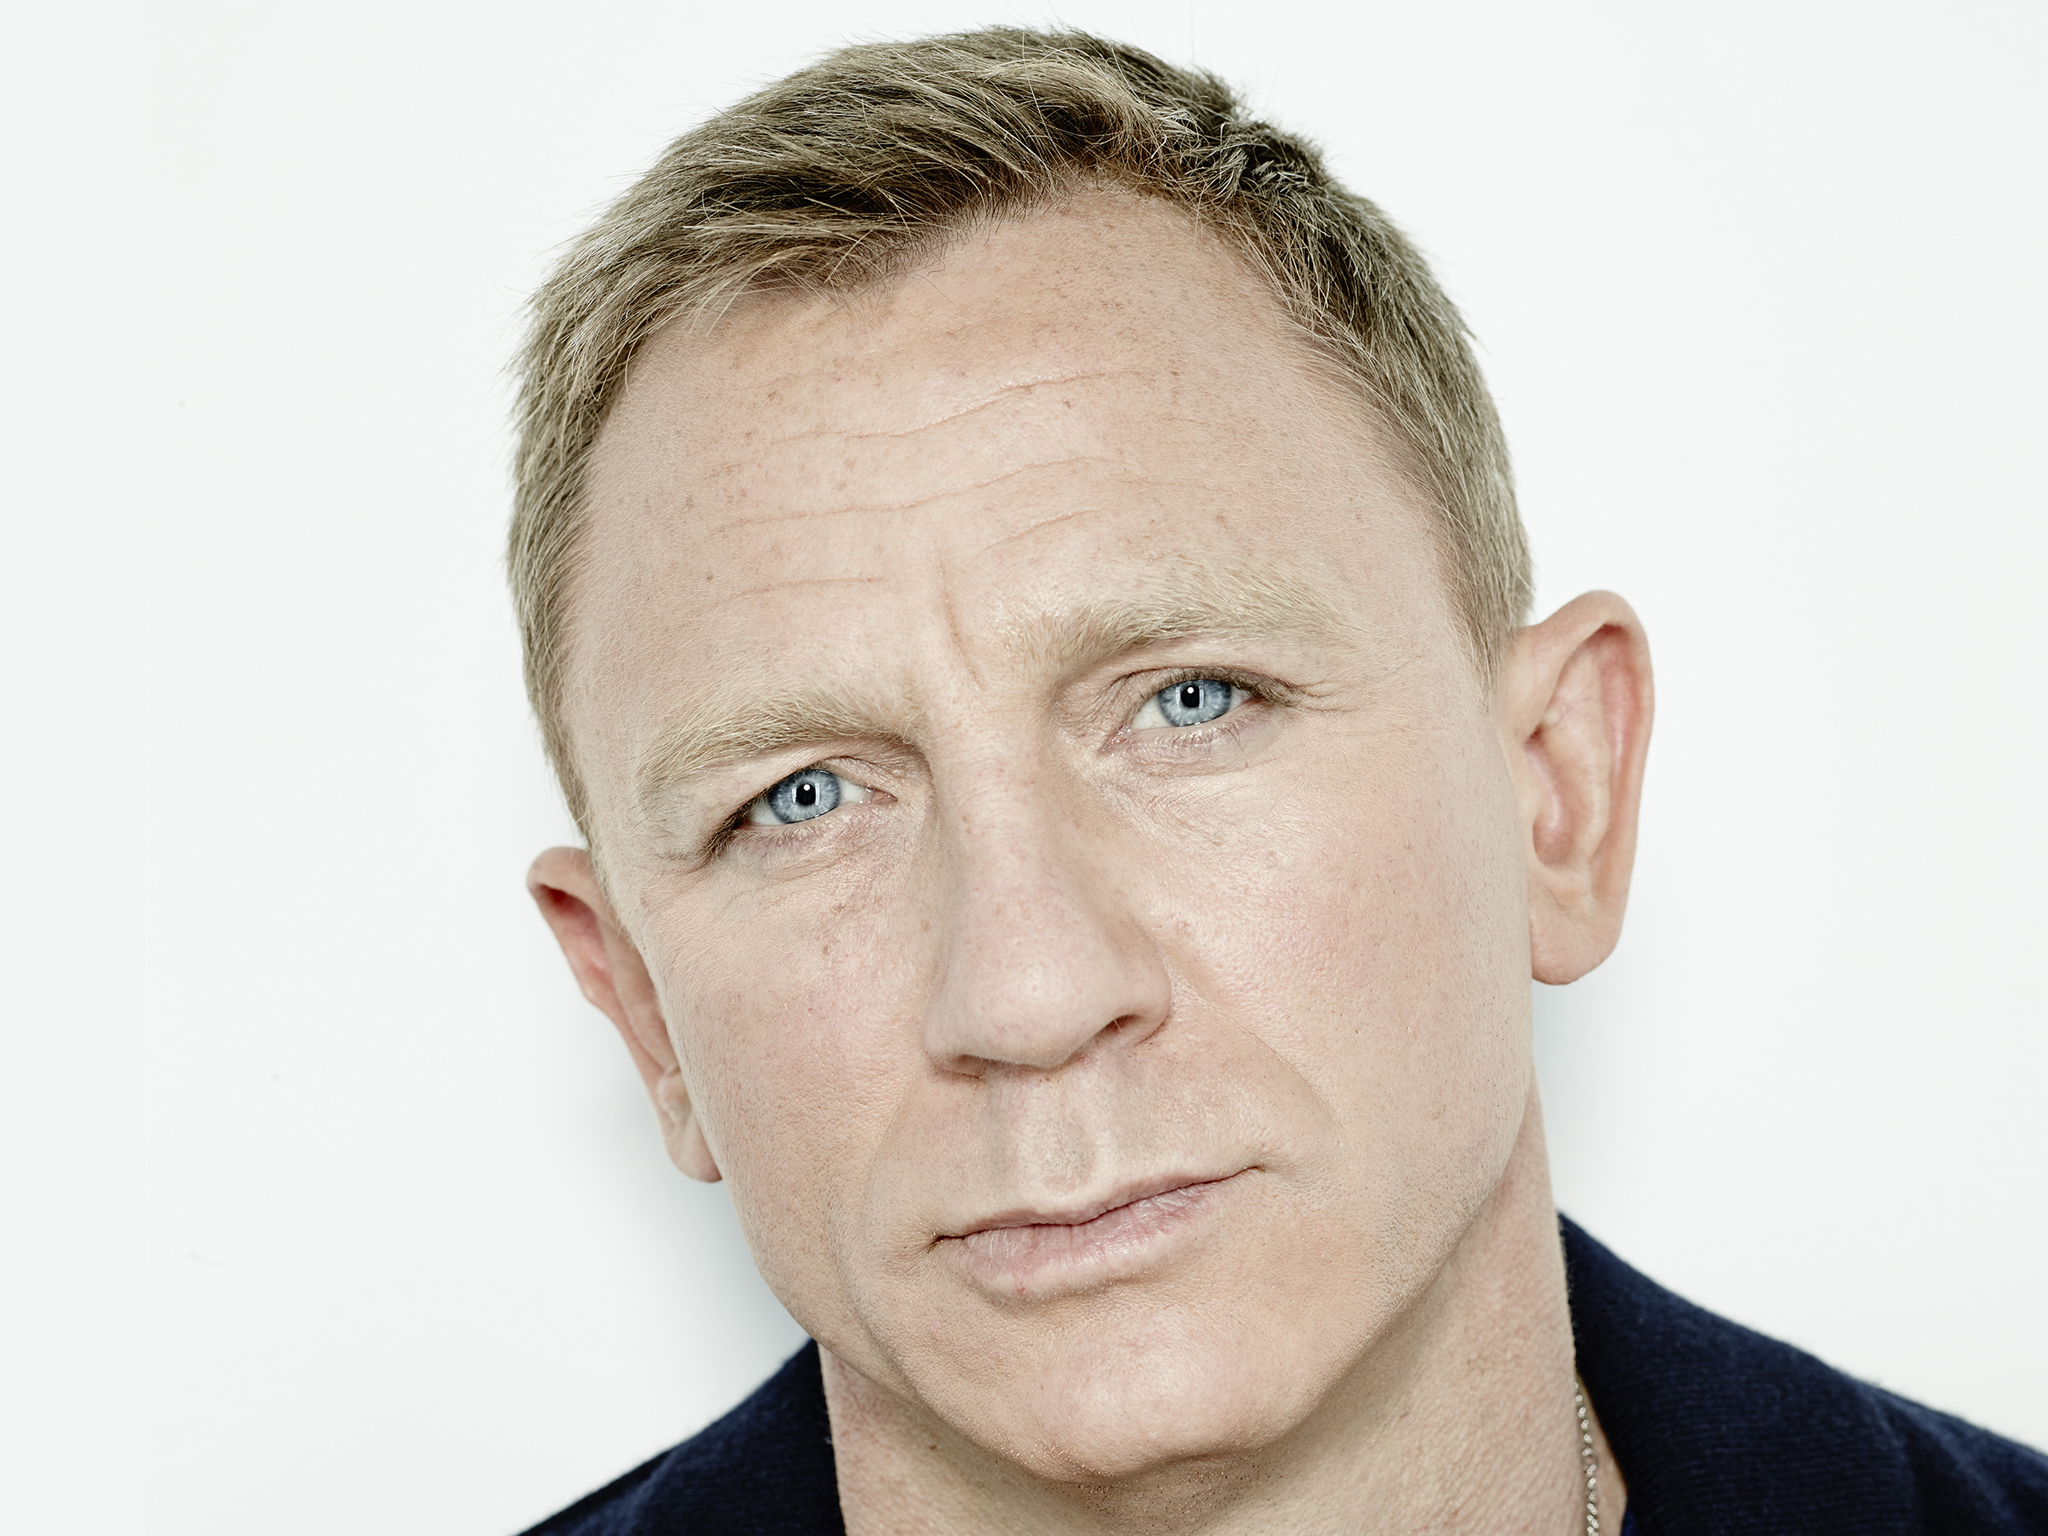 Daniel Craig © Photography by Paul Stuart. Styling by Gareth Scourfield